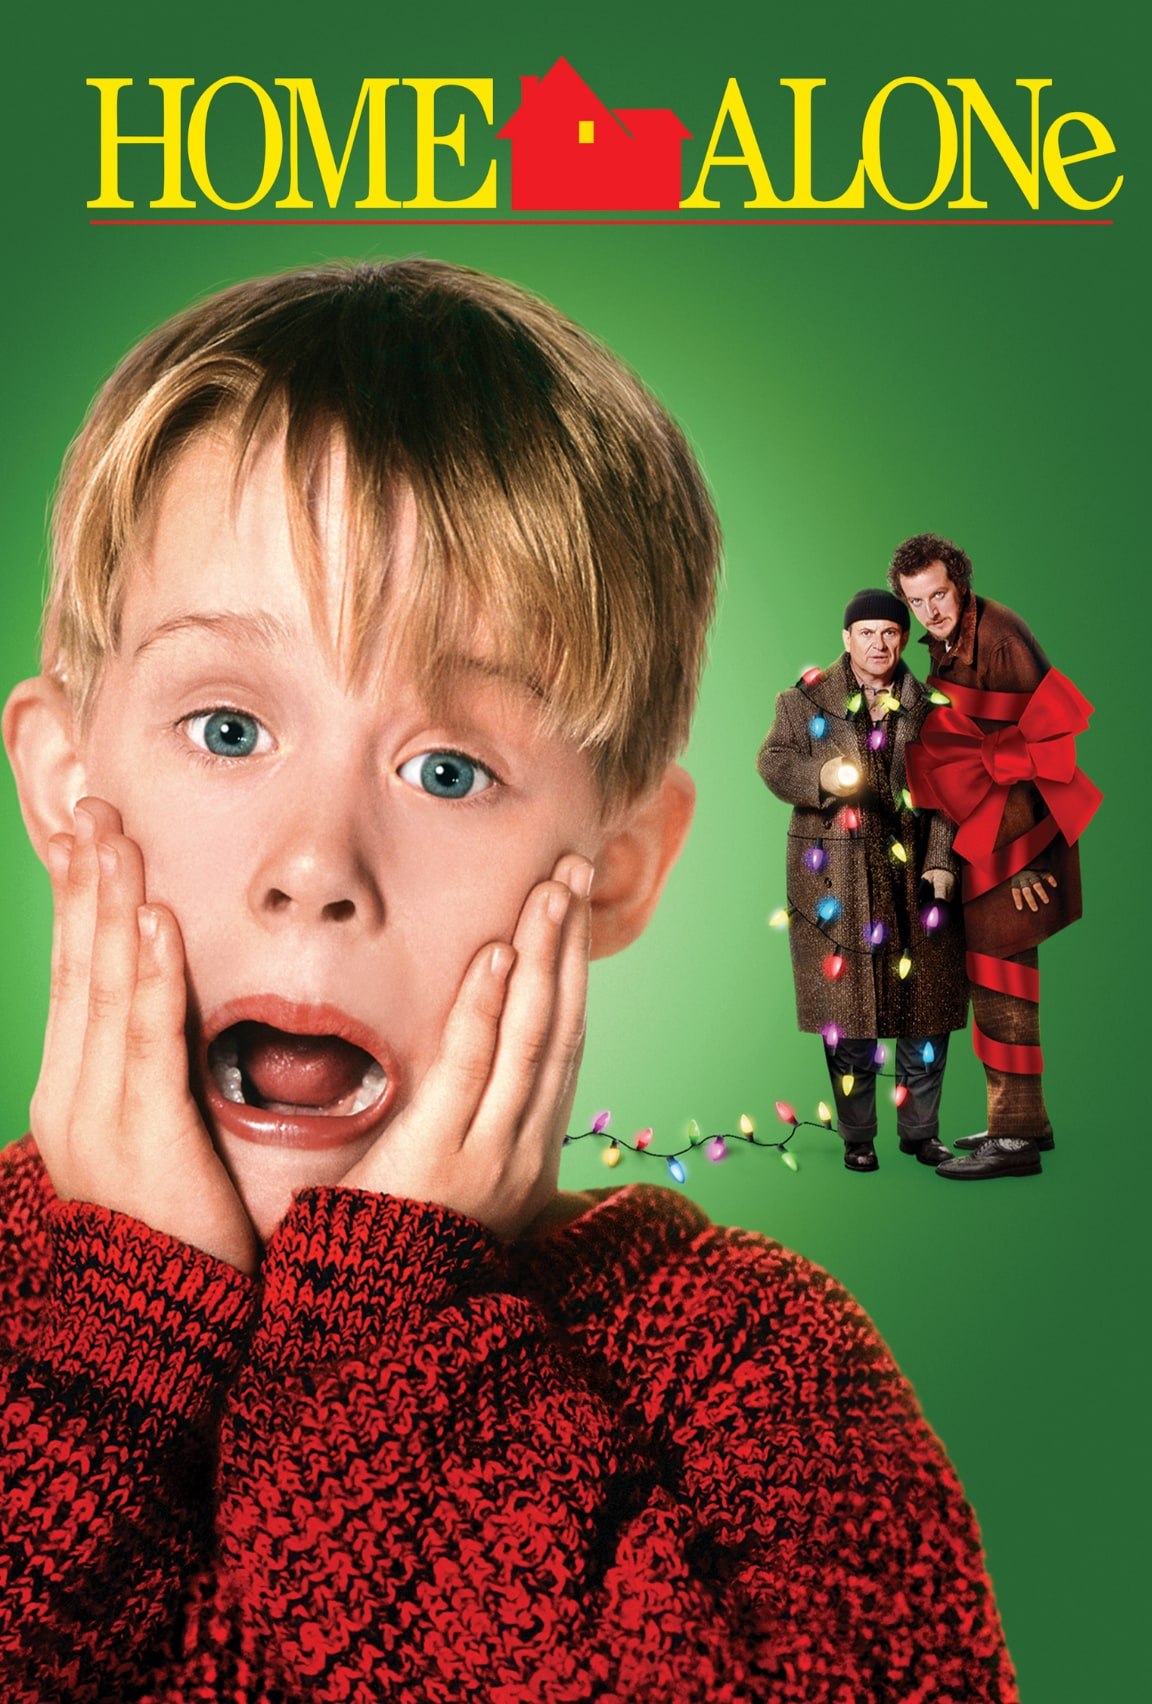 Home Alone now streaming on Disney Plus